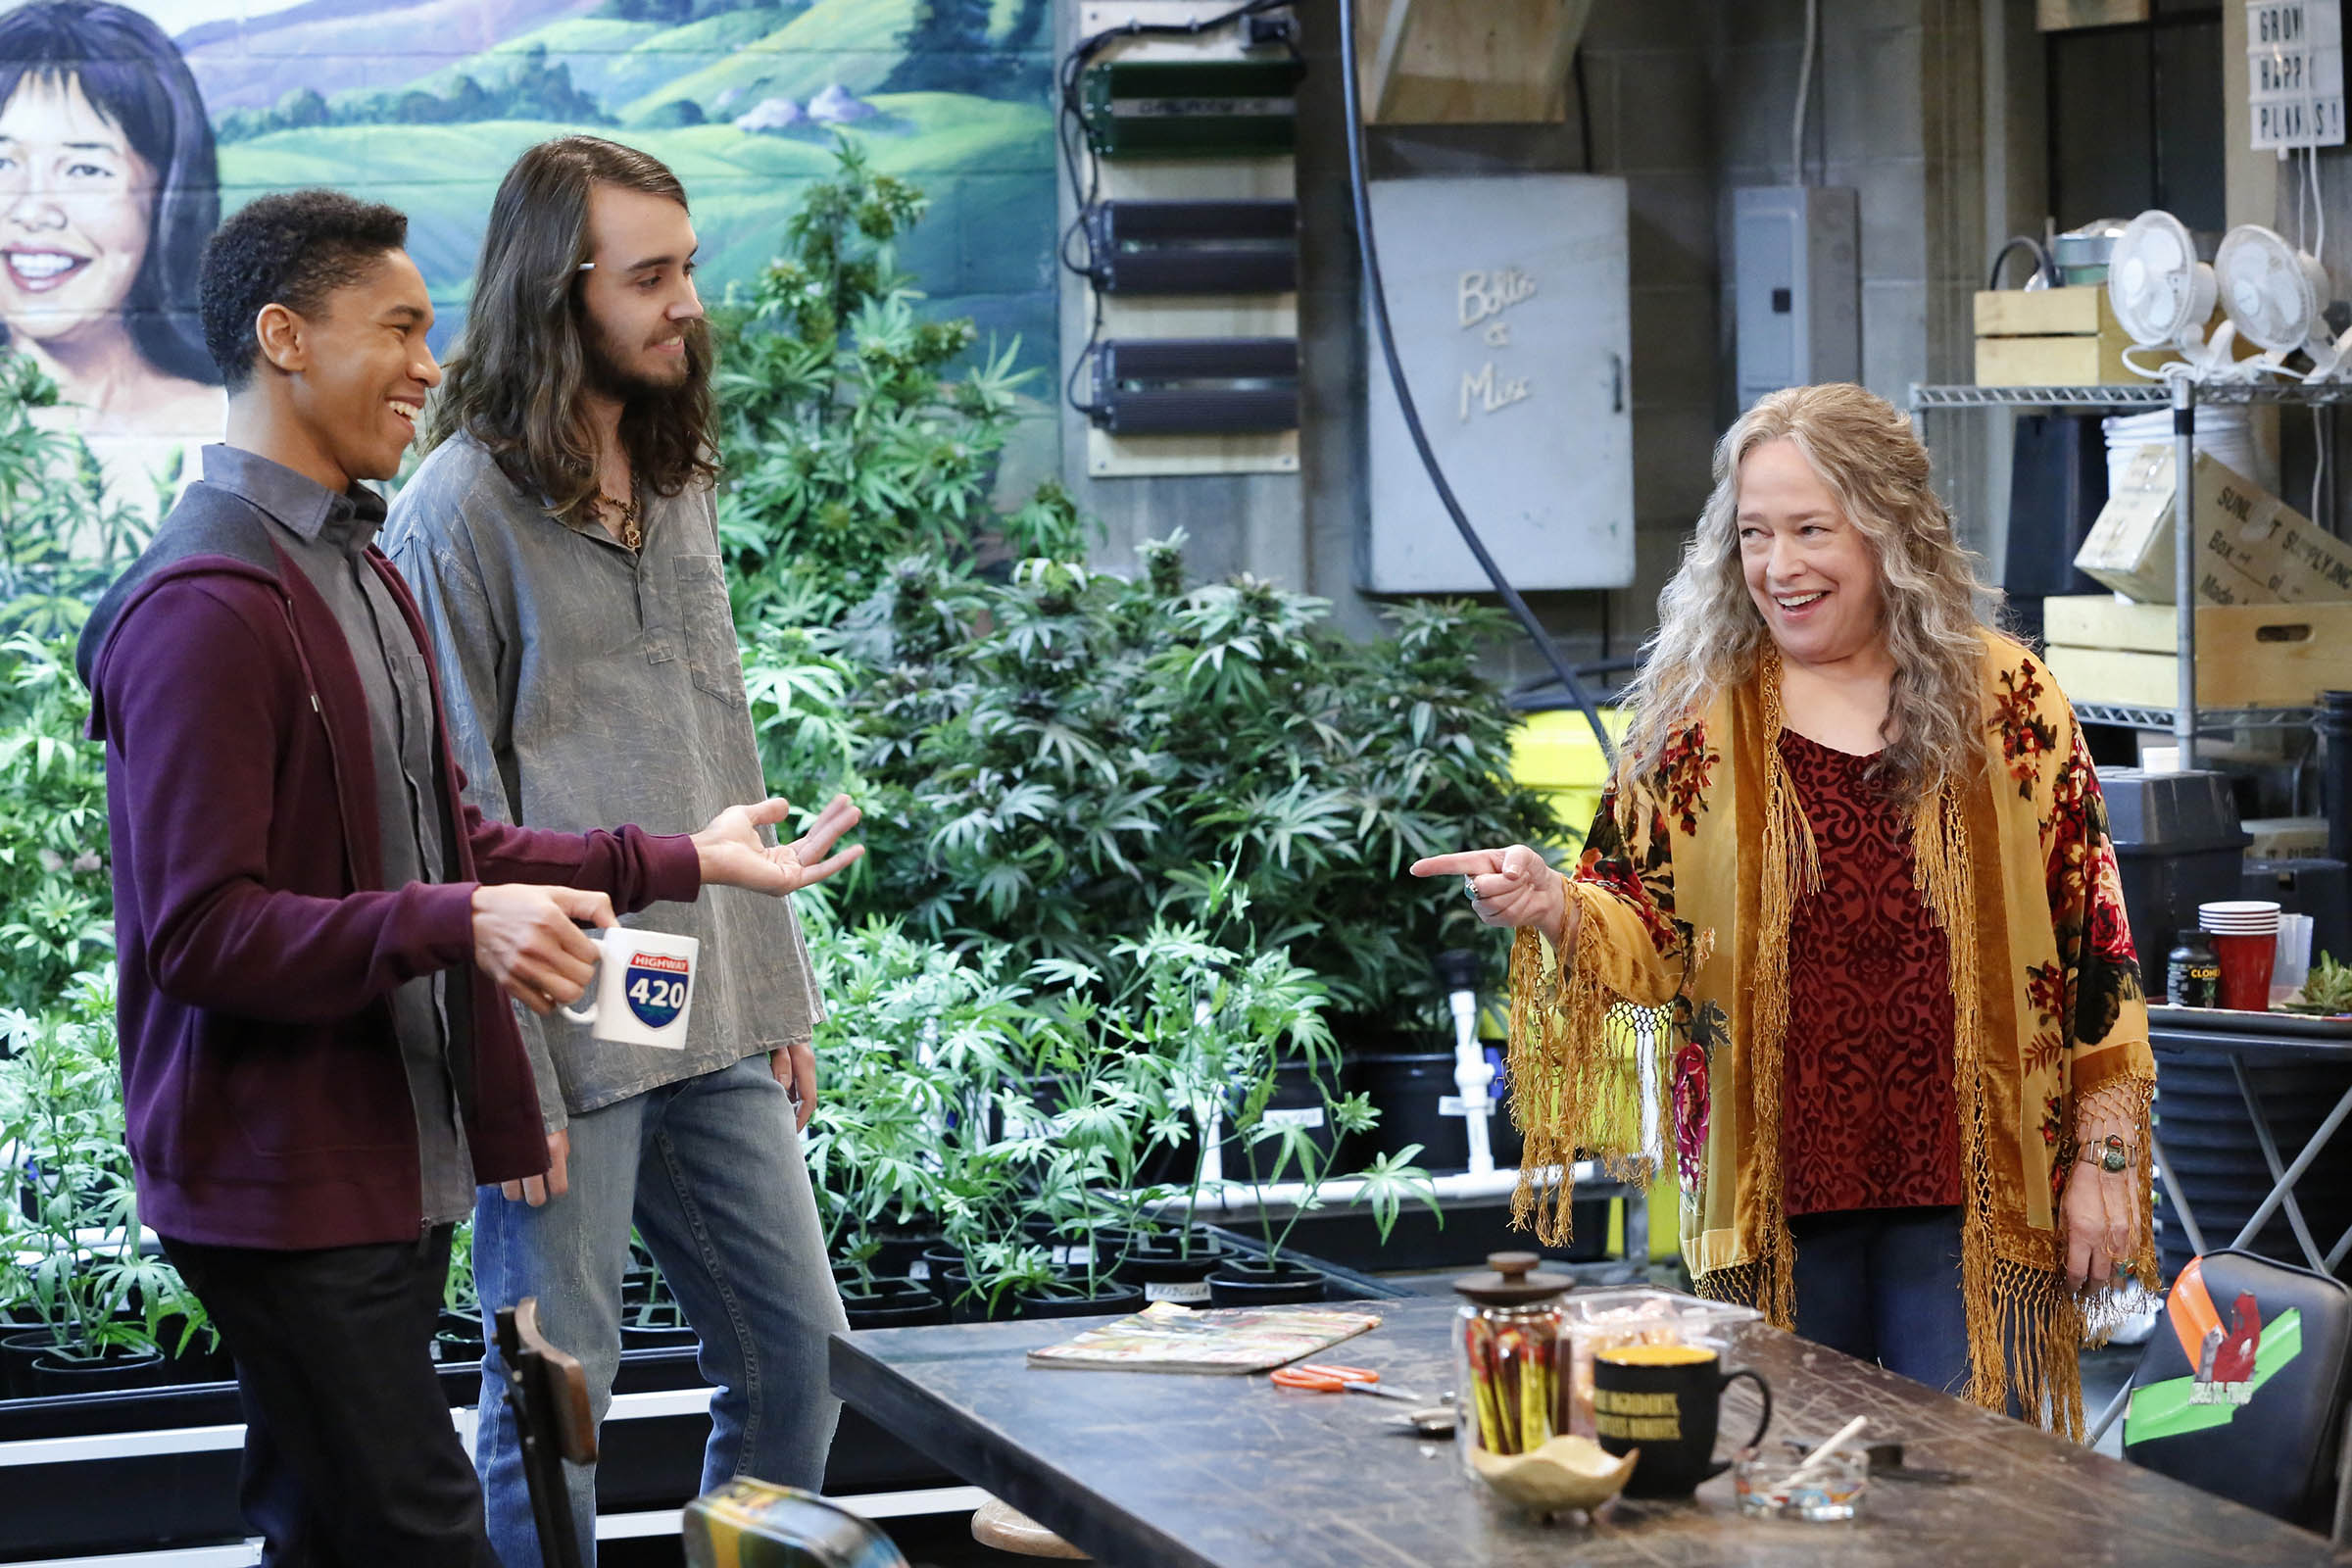 In 'Disjointed', Kathy Bates plays a lifelong advocate for legalization finally living her dream as the owner of an Los Angeles cannabis dispensary.